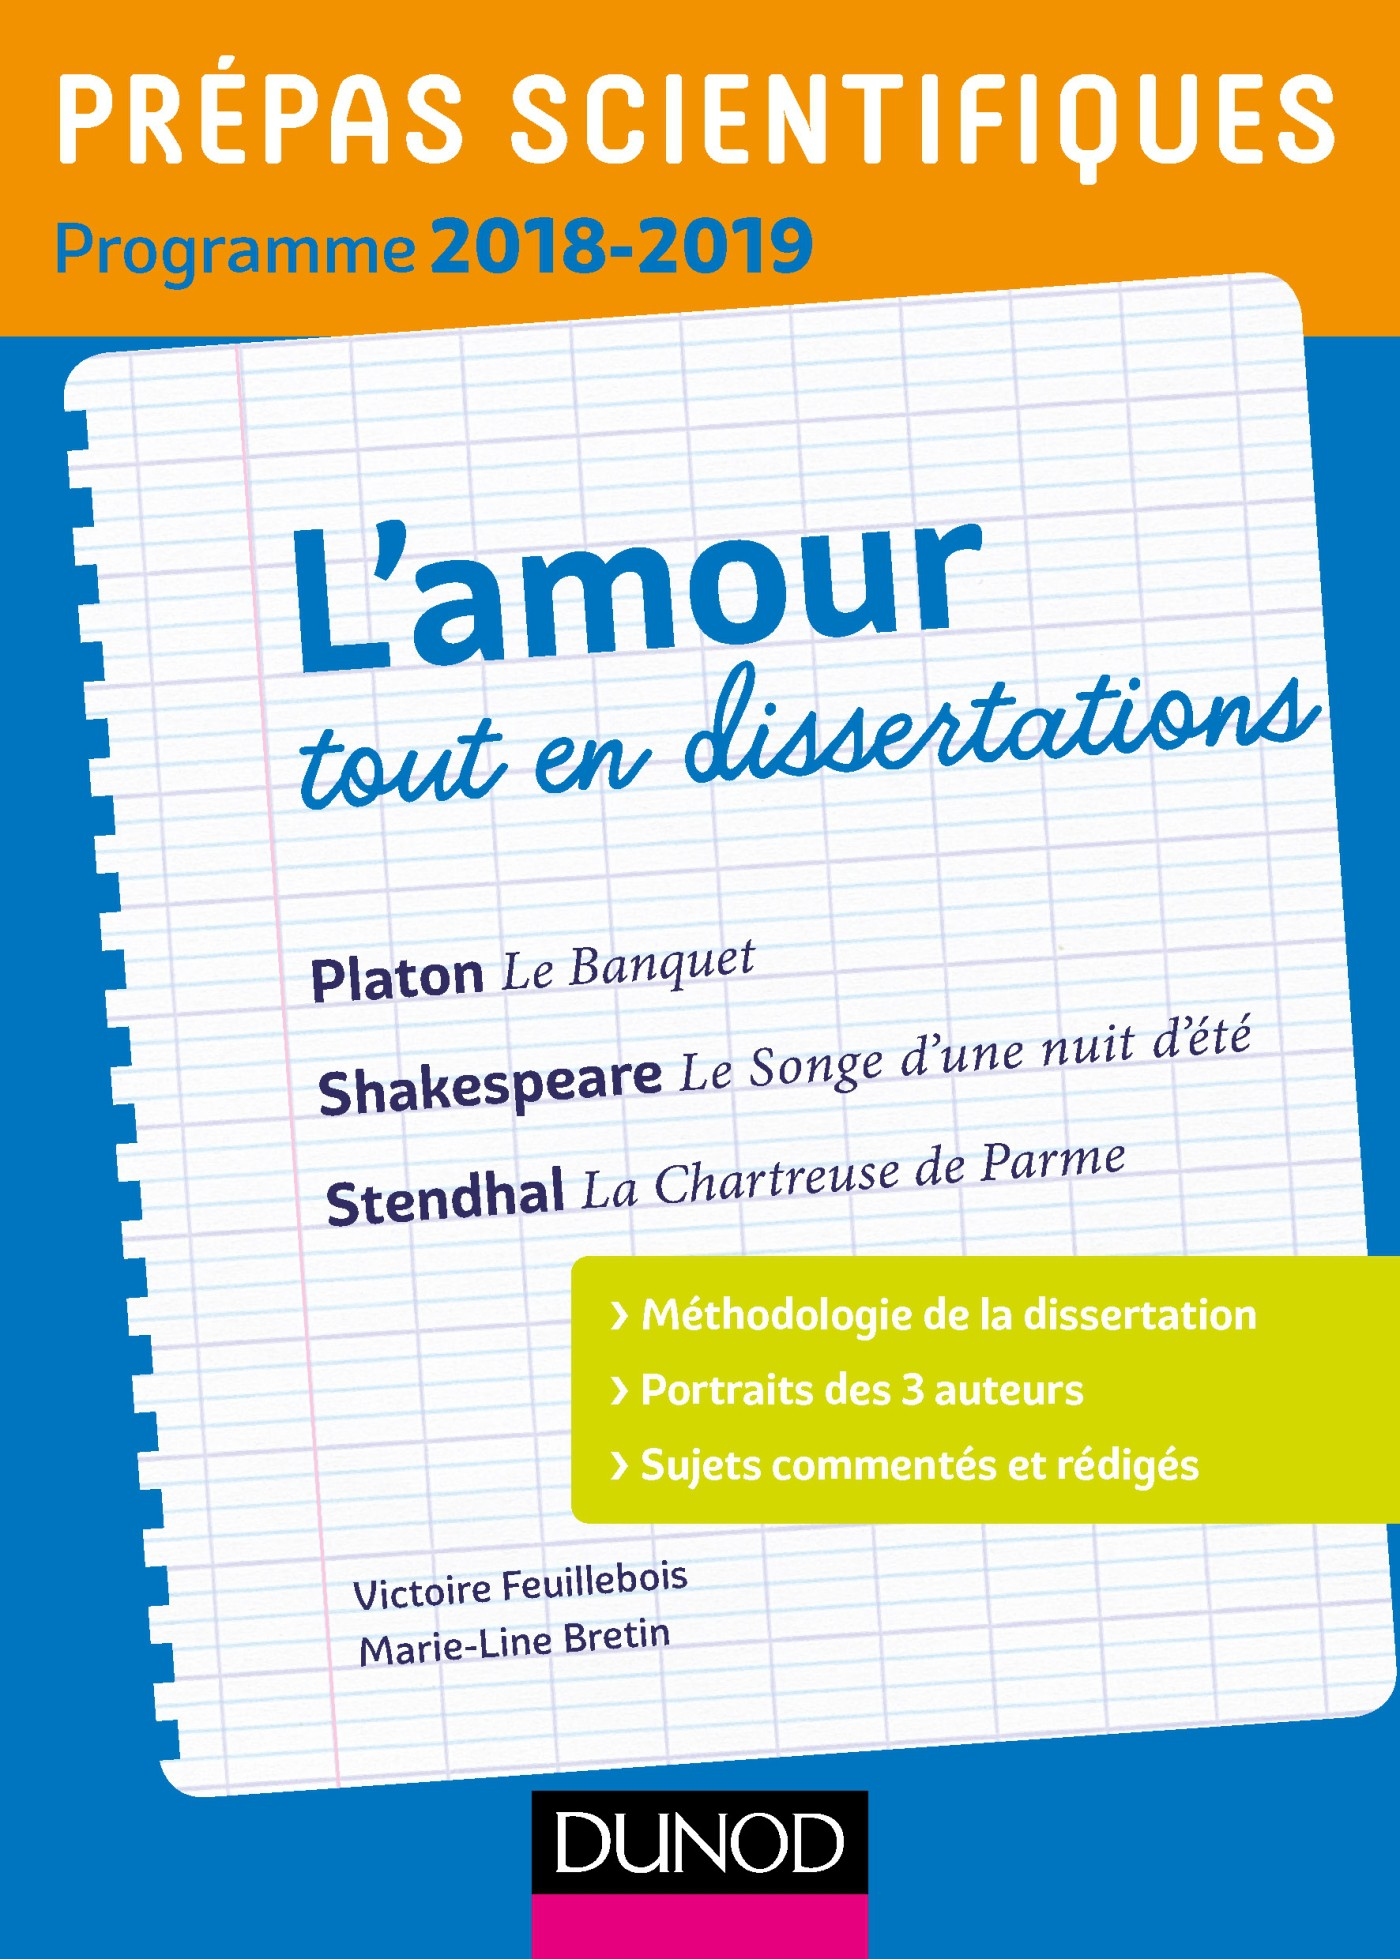 Dissertation Sur L39amour Philosophie » Cheap custom written papers